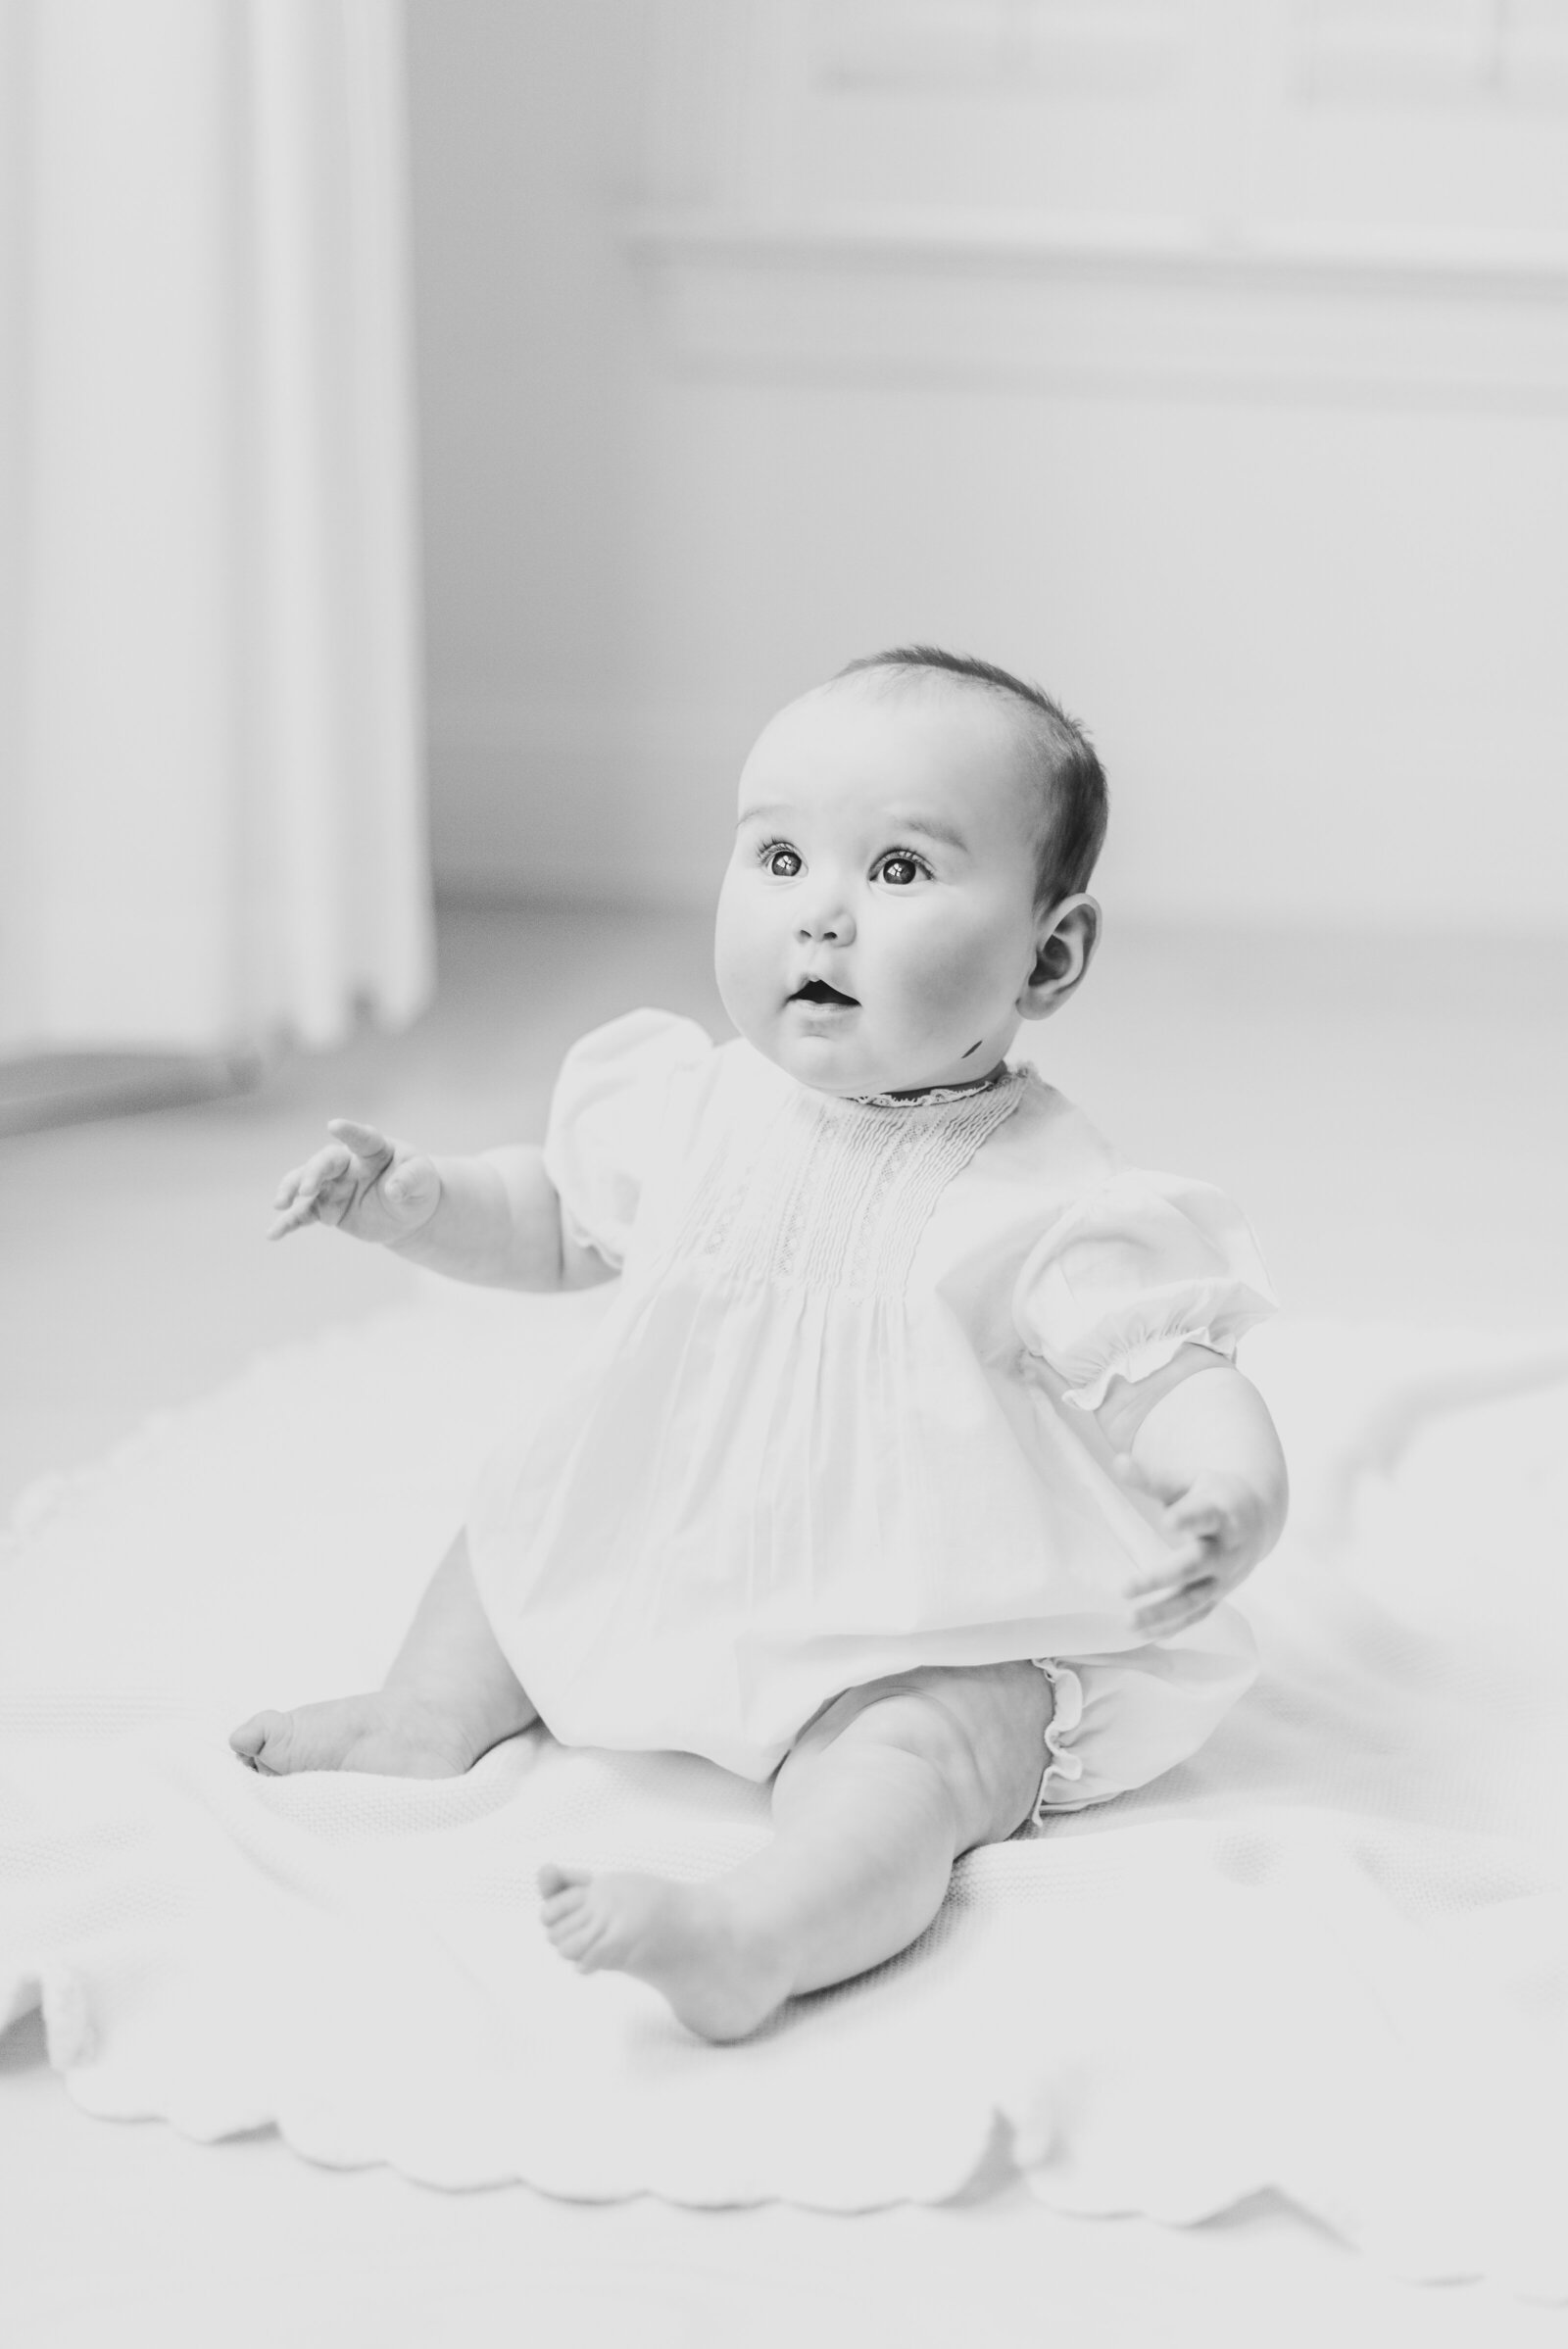 Louise-Pinto-Simple-Baby-6